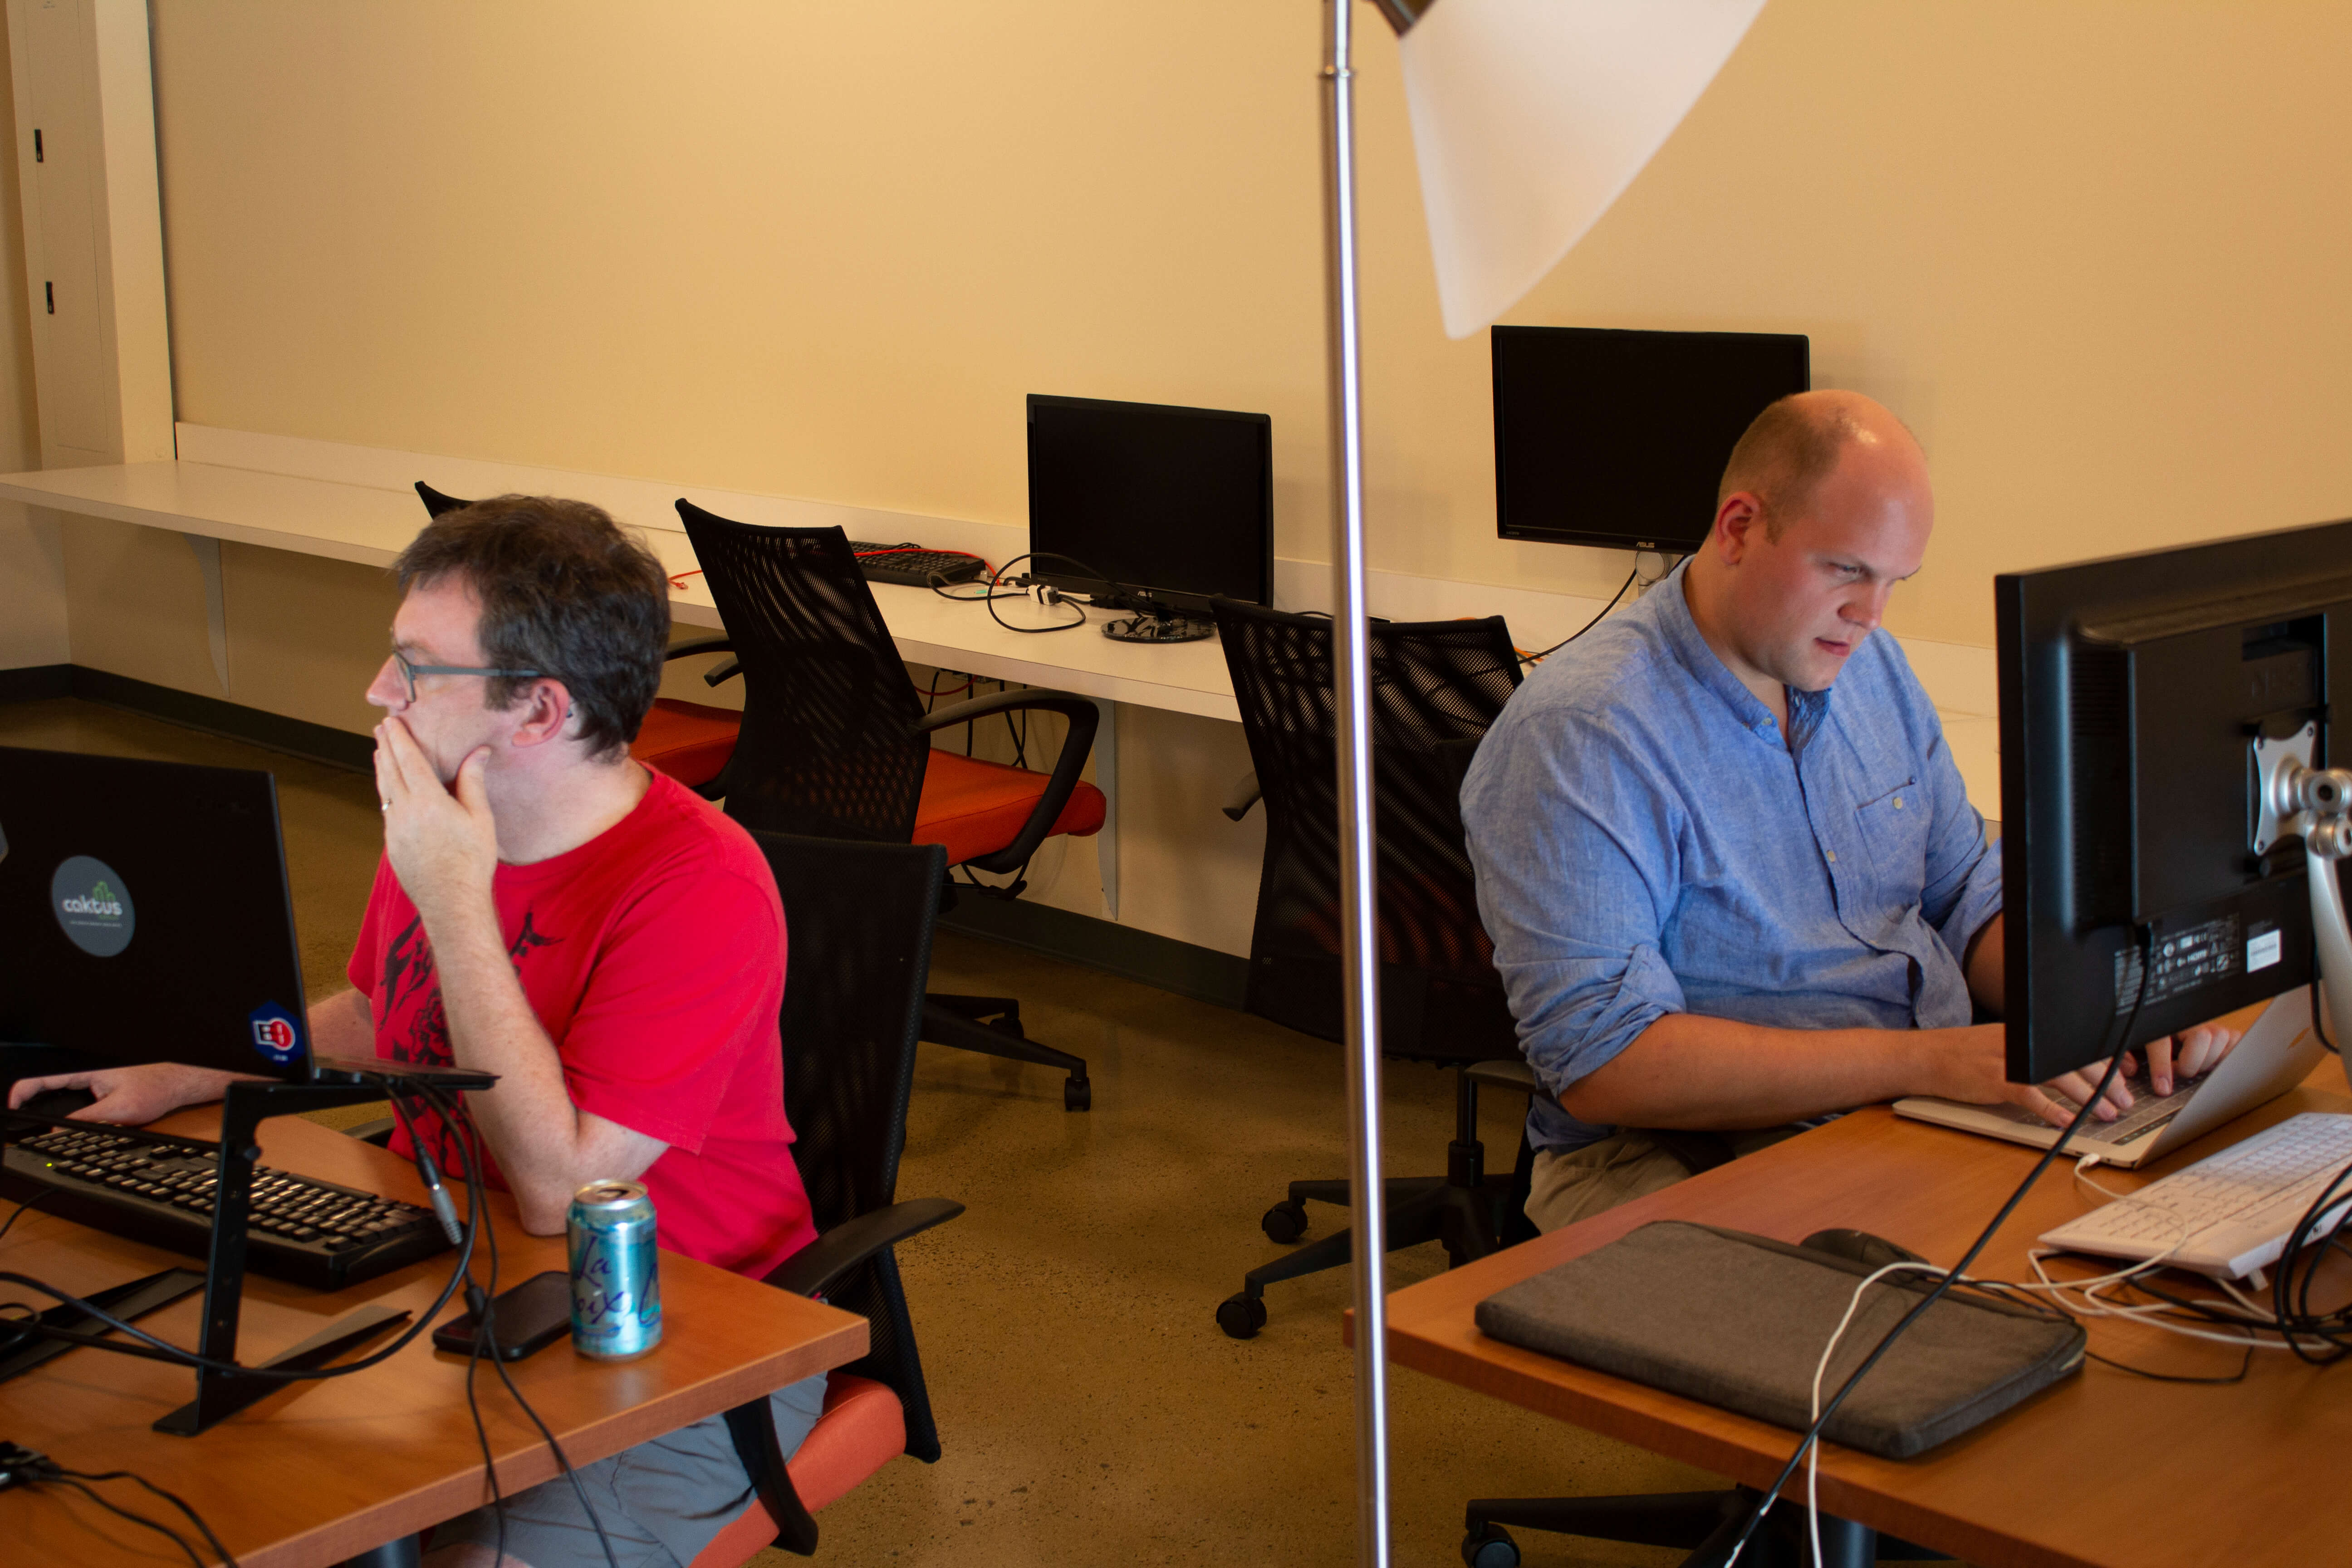 Two developers working at their desks